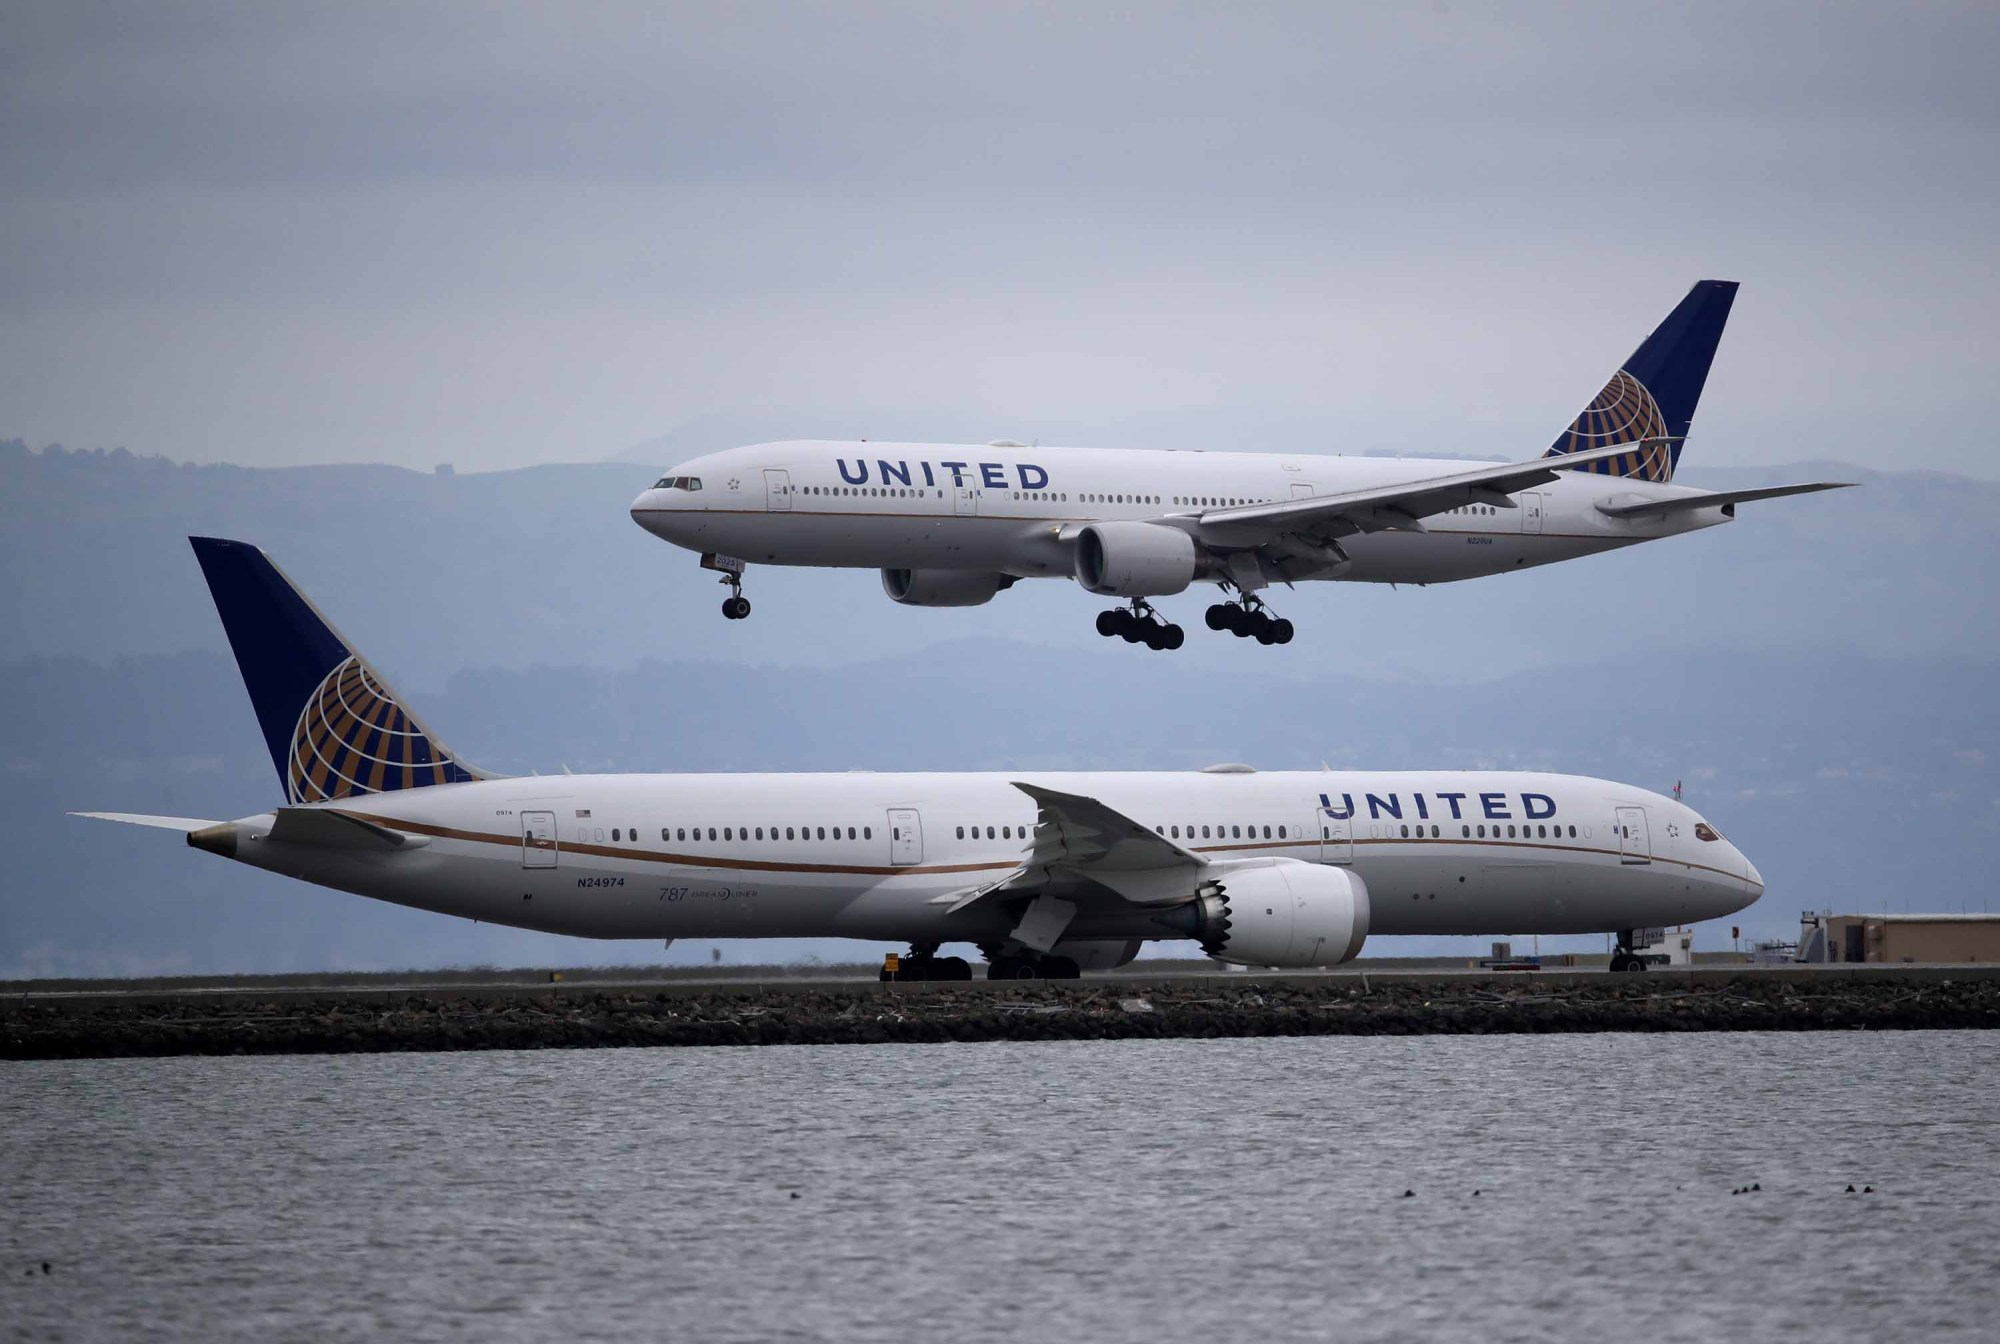 A United Airlines plane lands at San Francisco International Airport on March 06, 2020, in Burlingame. (Justin Sullivan/Getty Images)